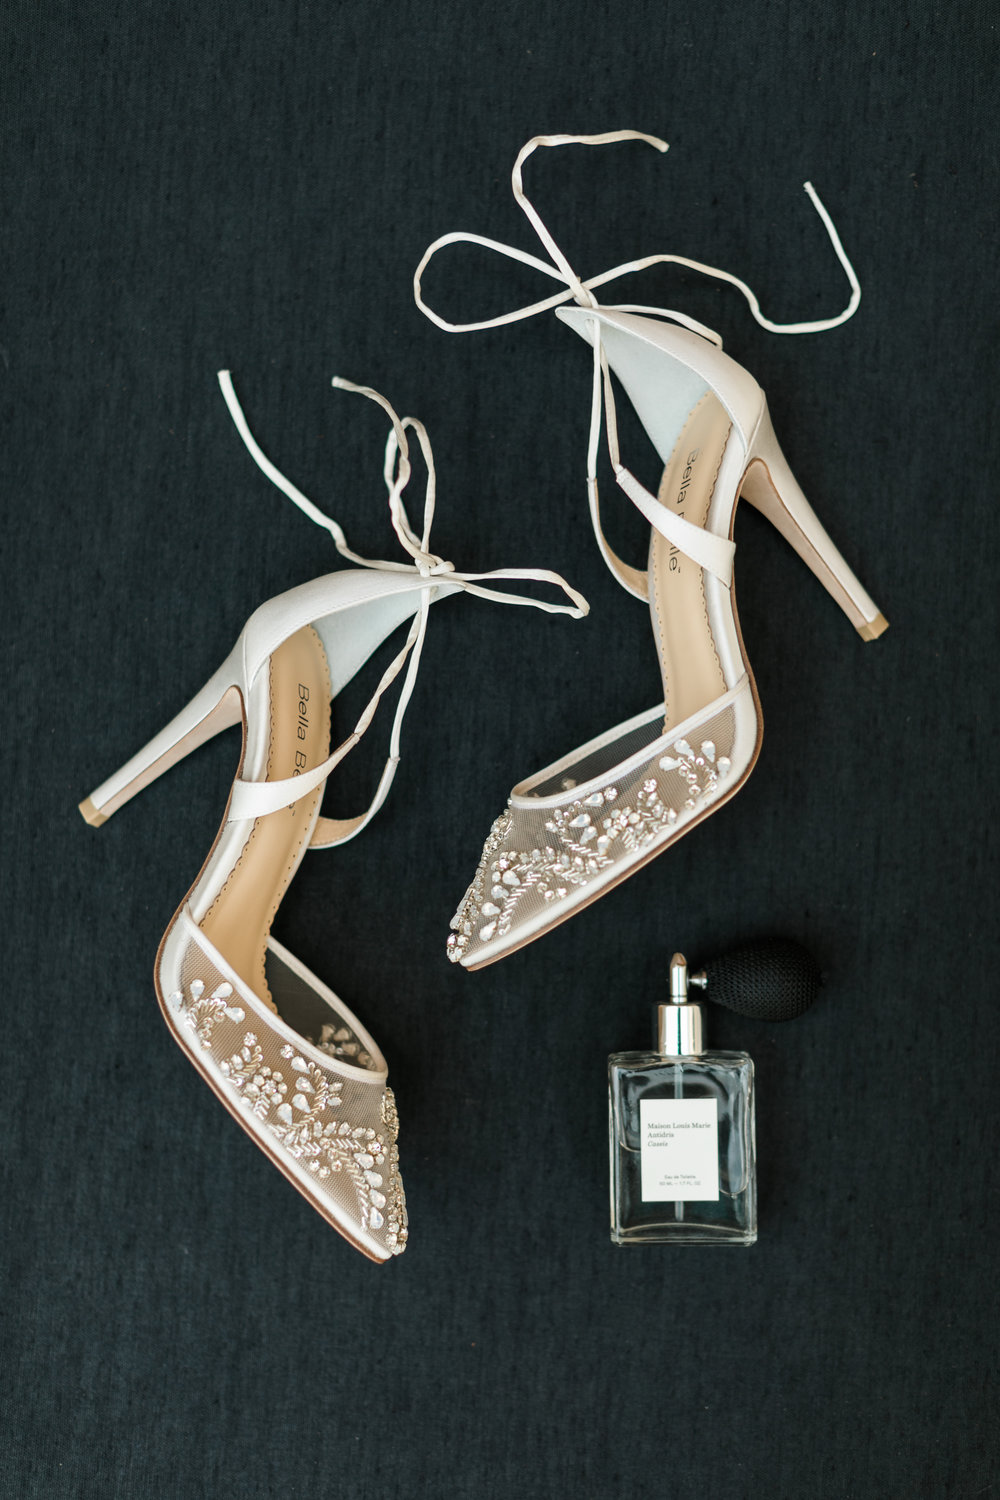 greystone-mansion-photography-9.jpg